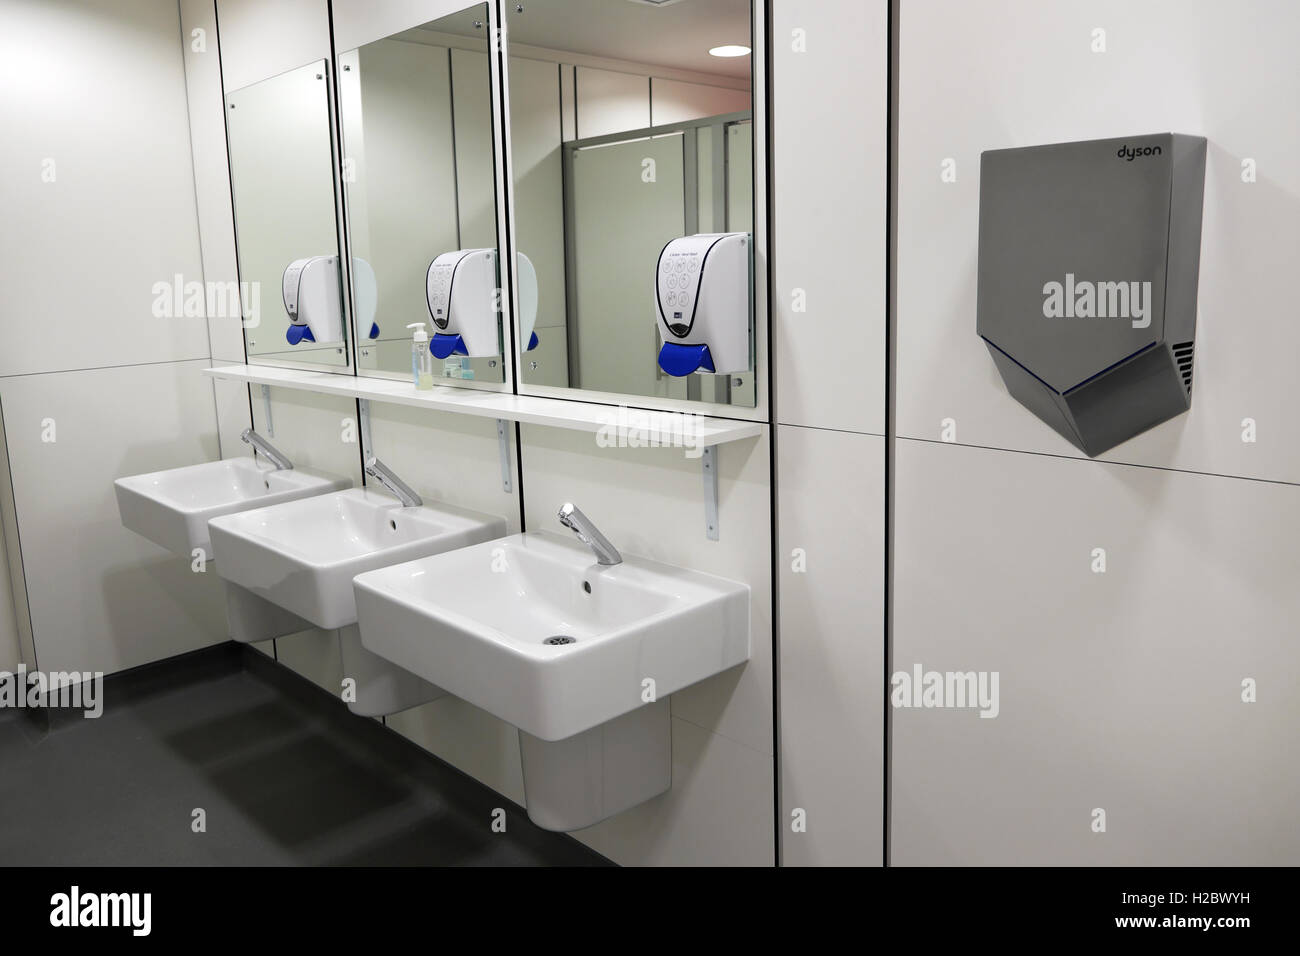 Sinks and soap dispensers Guys Hospital Cancer Centre in Southwark, South London, England, UK  KATHY DEWITT - Stock Image